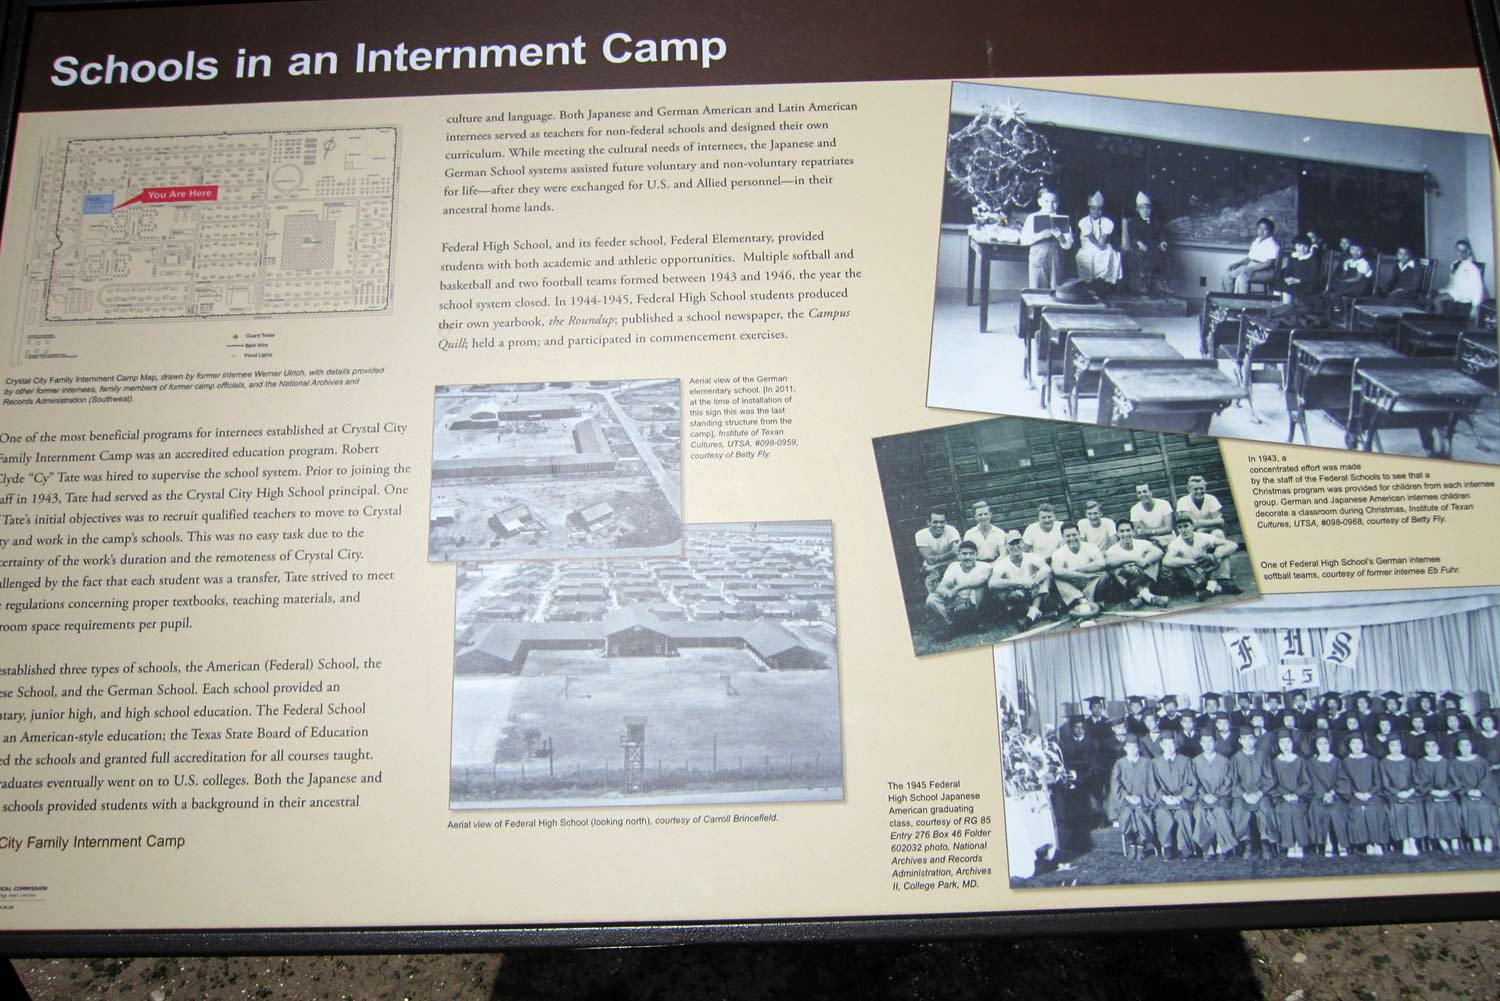 commemorating crystal city the transnational dimension of german schools in an internment camp panel of the interpretive trail photo courtesy of linda harms